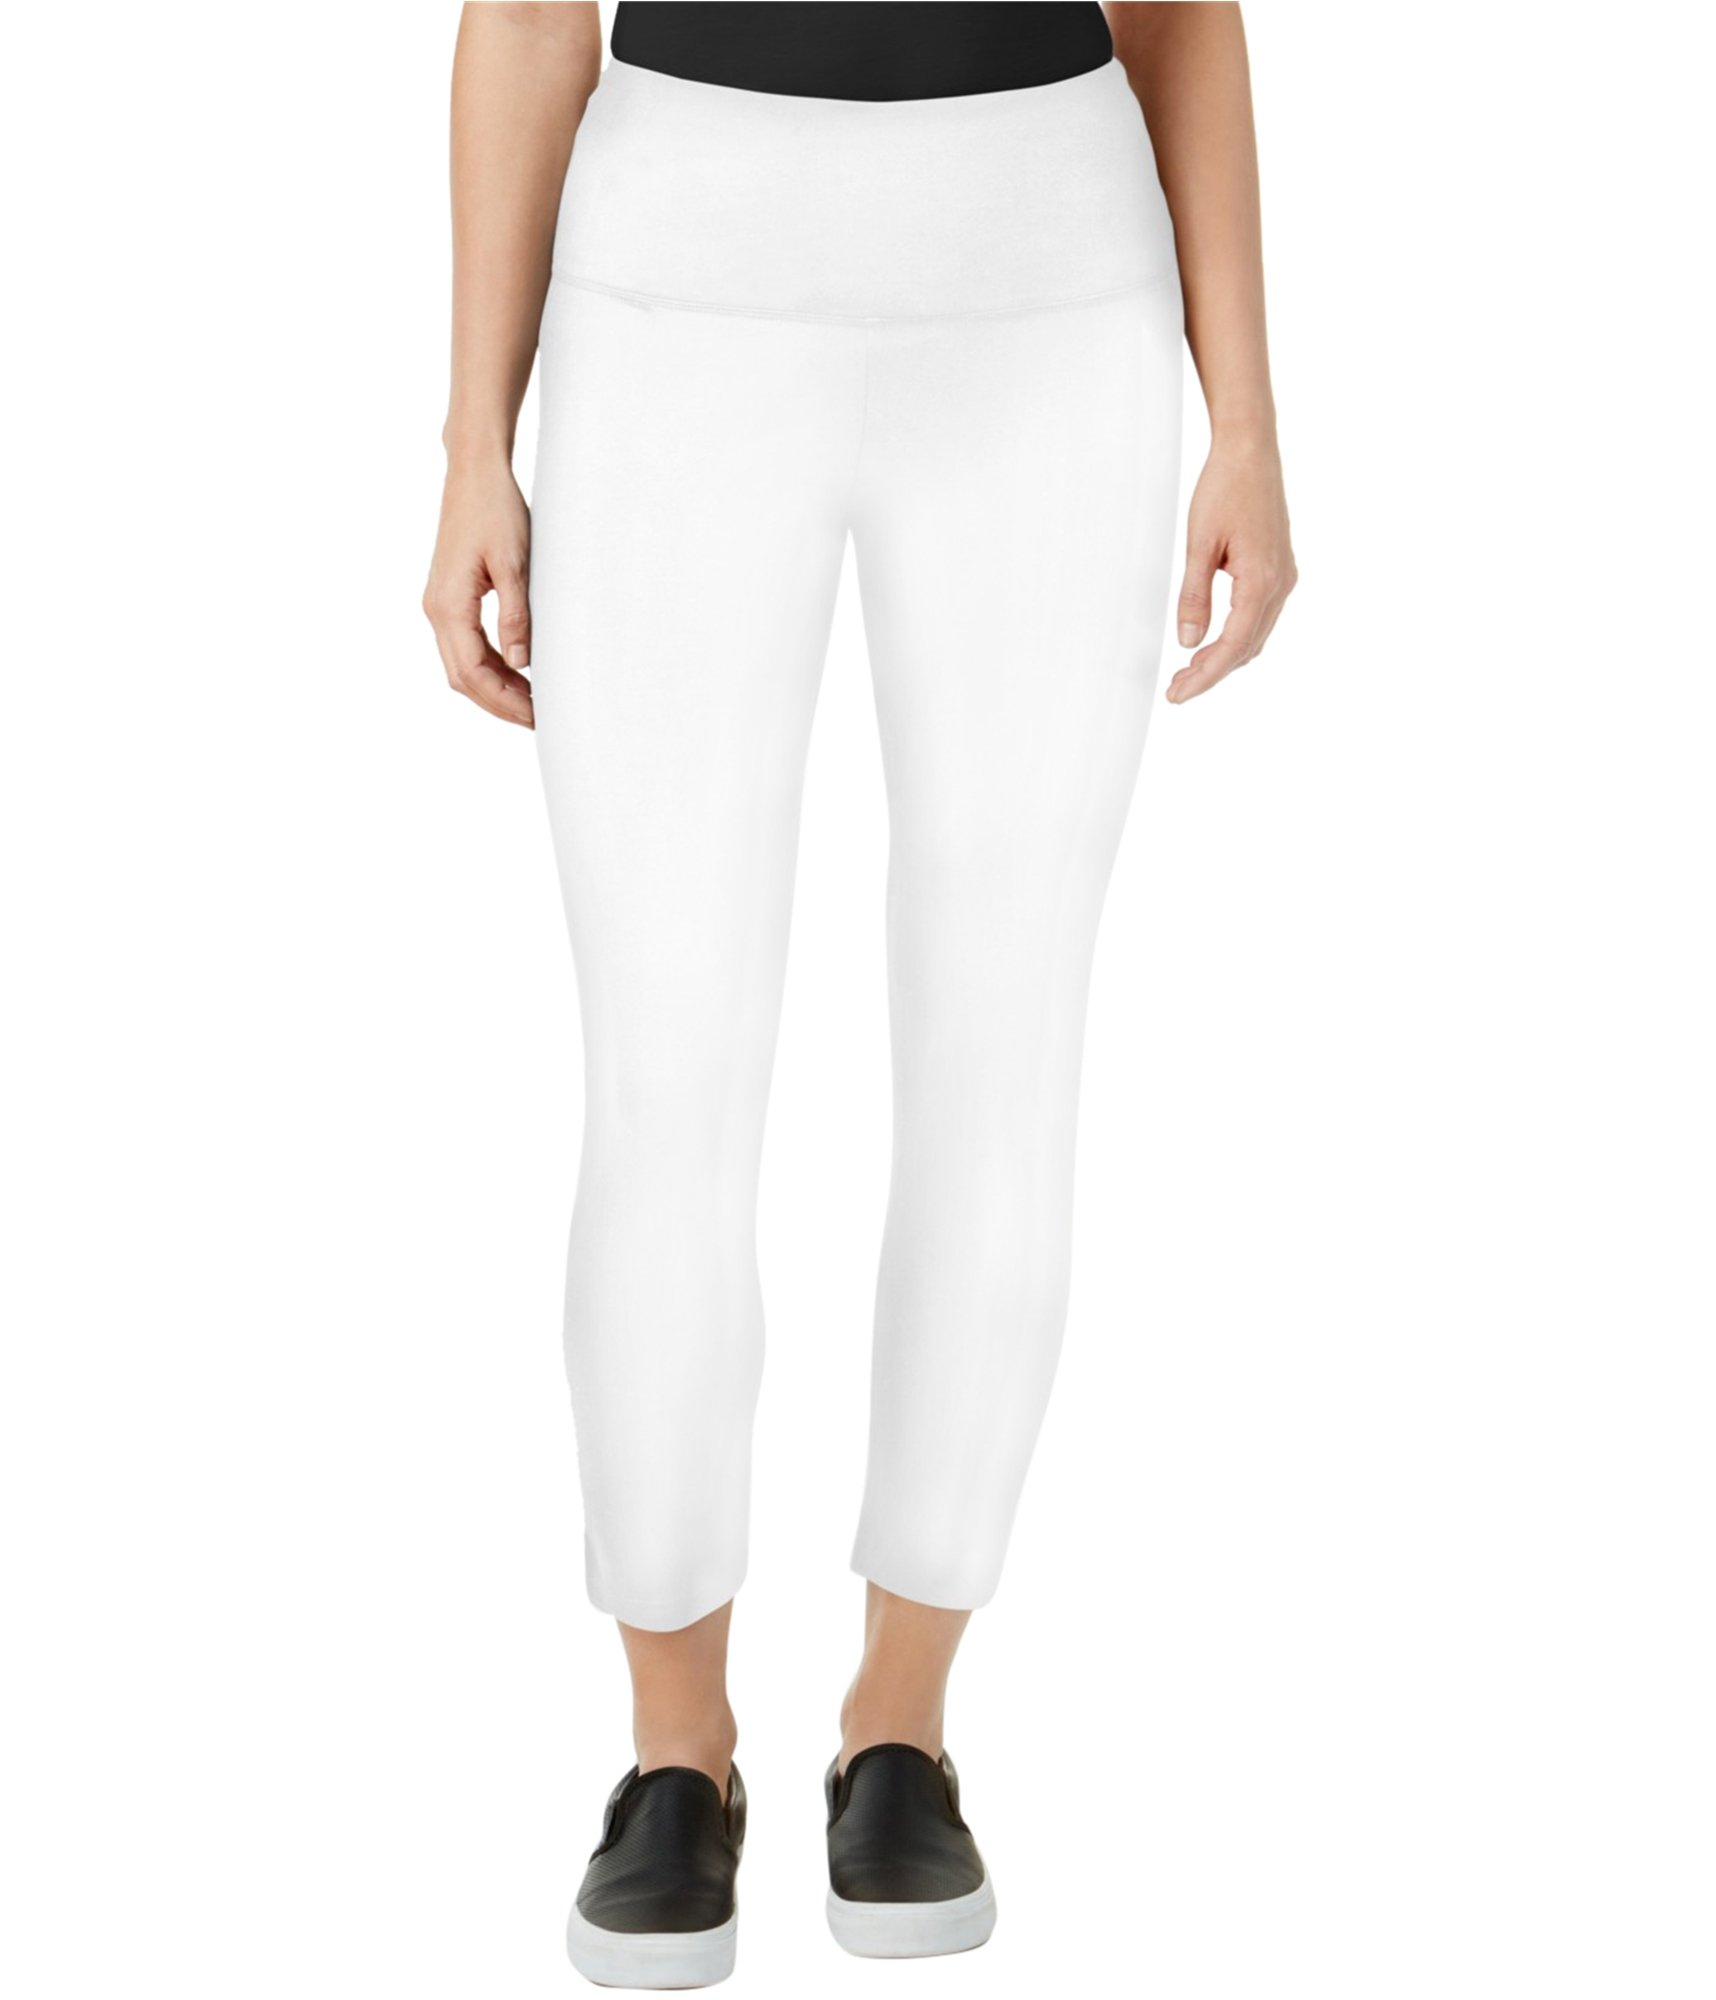 Style & Co. Womens Fitness Yoga Yoga Legging White L